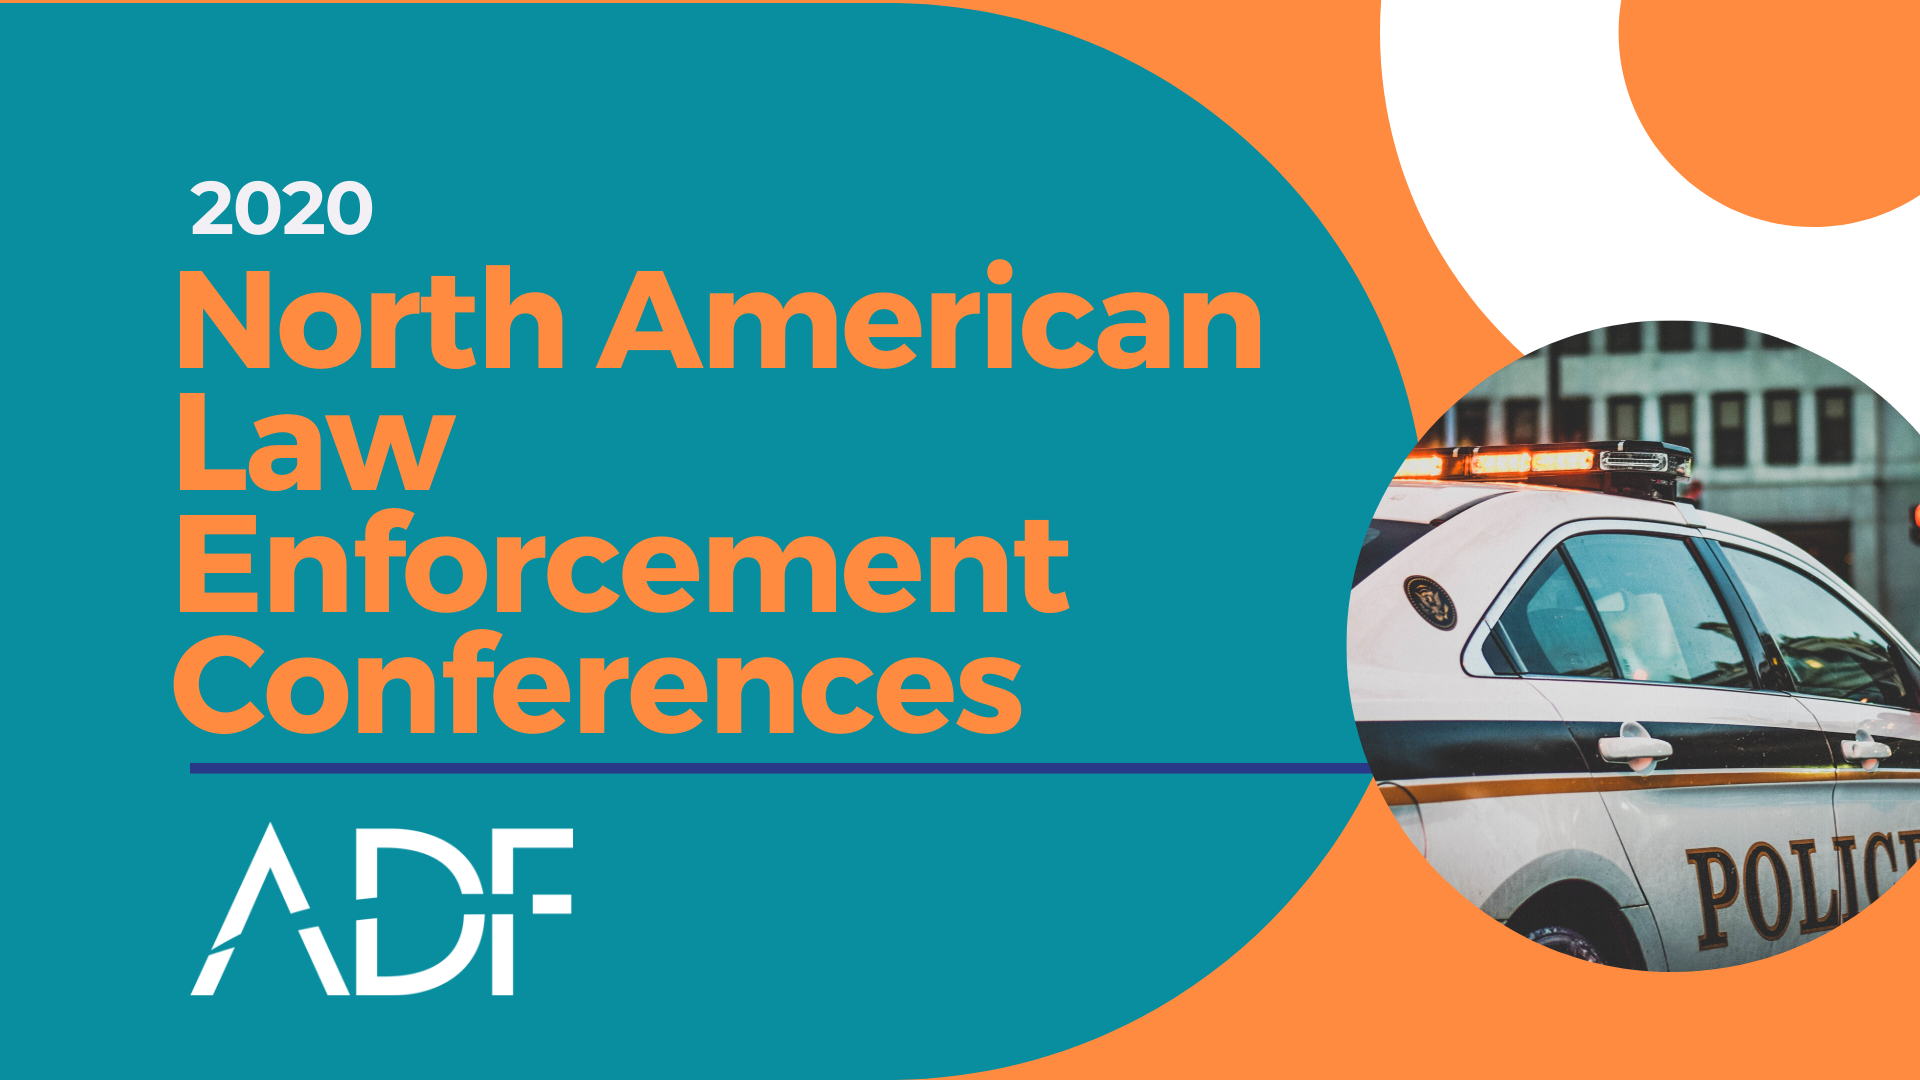 Best 2020 Law Enforcement Conferences in North America